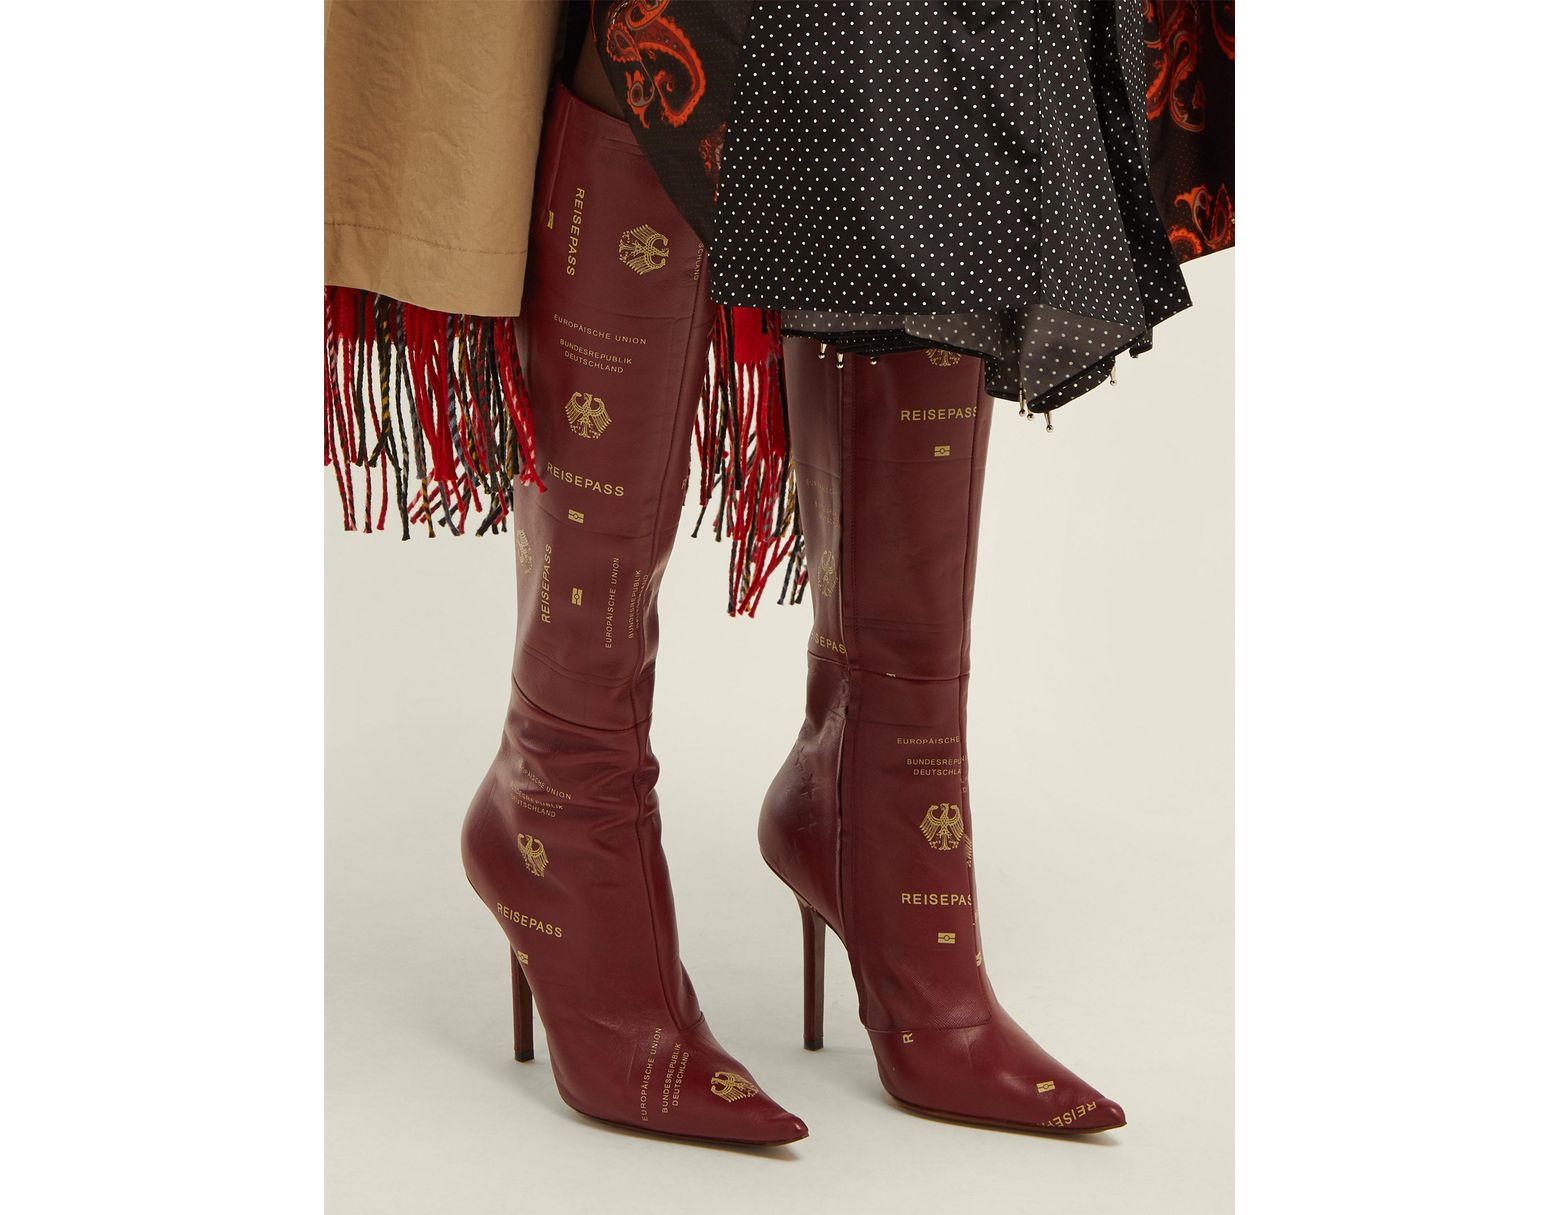 4f585e34d27 Vetements Passport Print Leather Knee High Boots in Red - Lyst